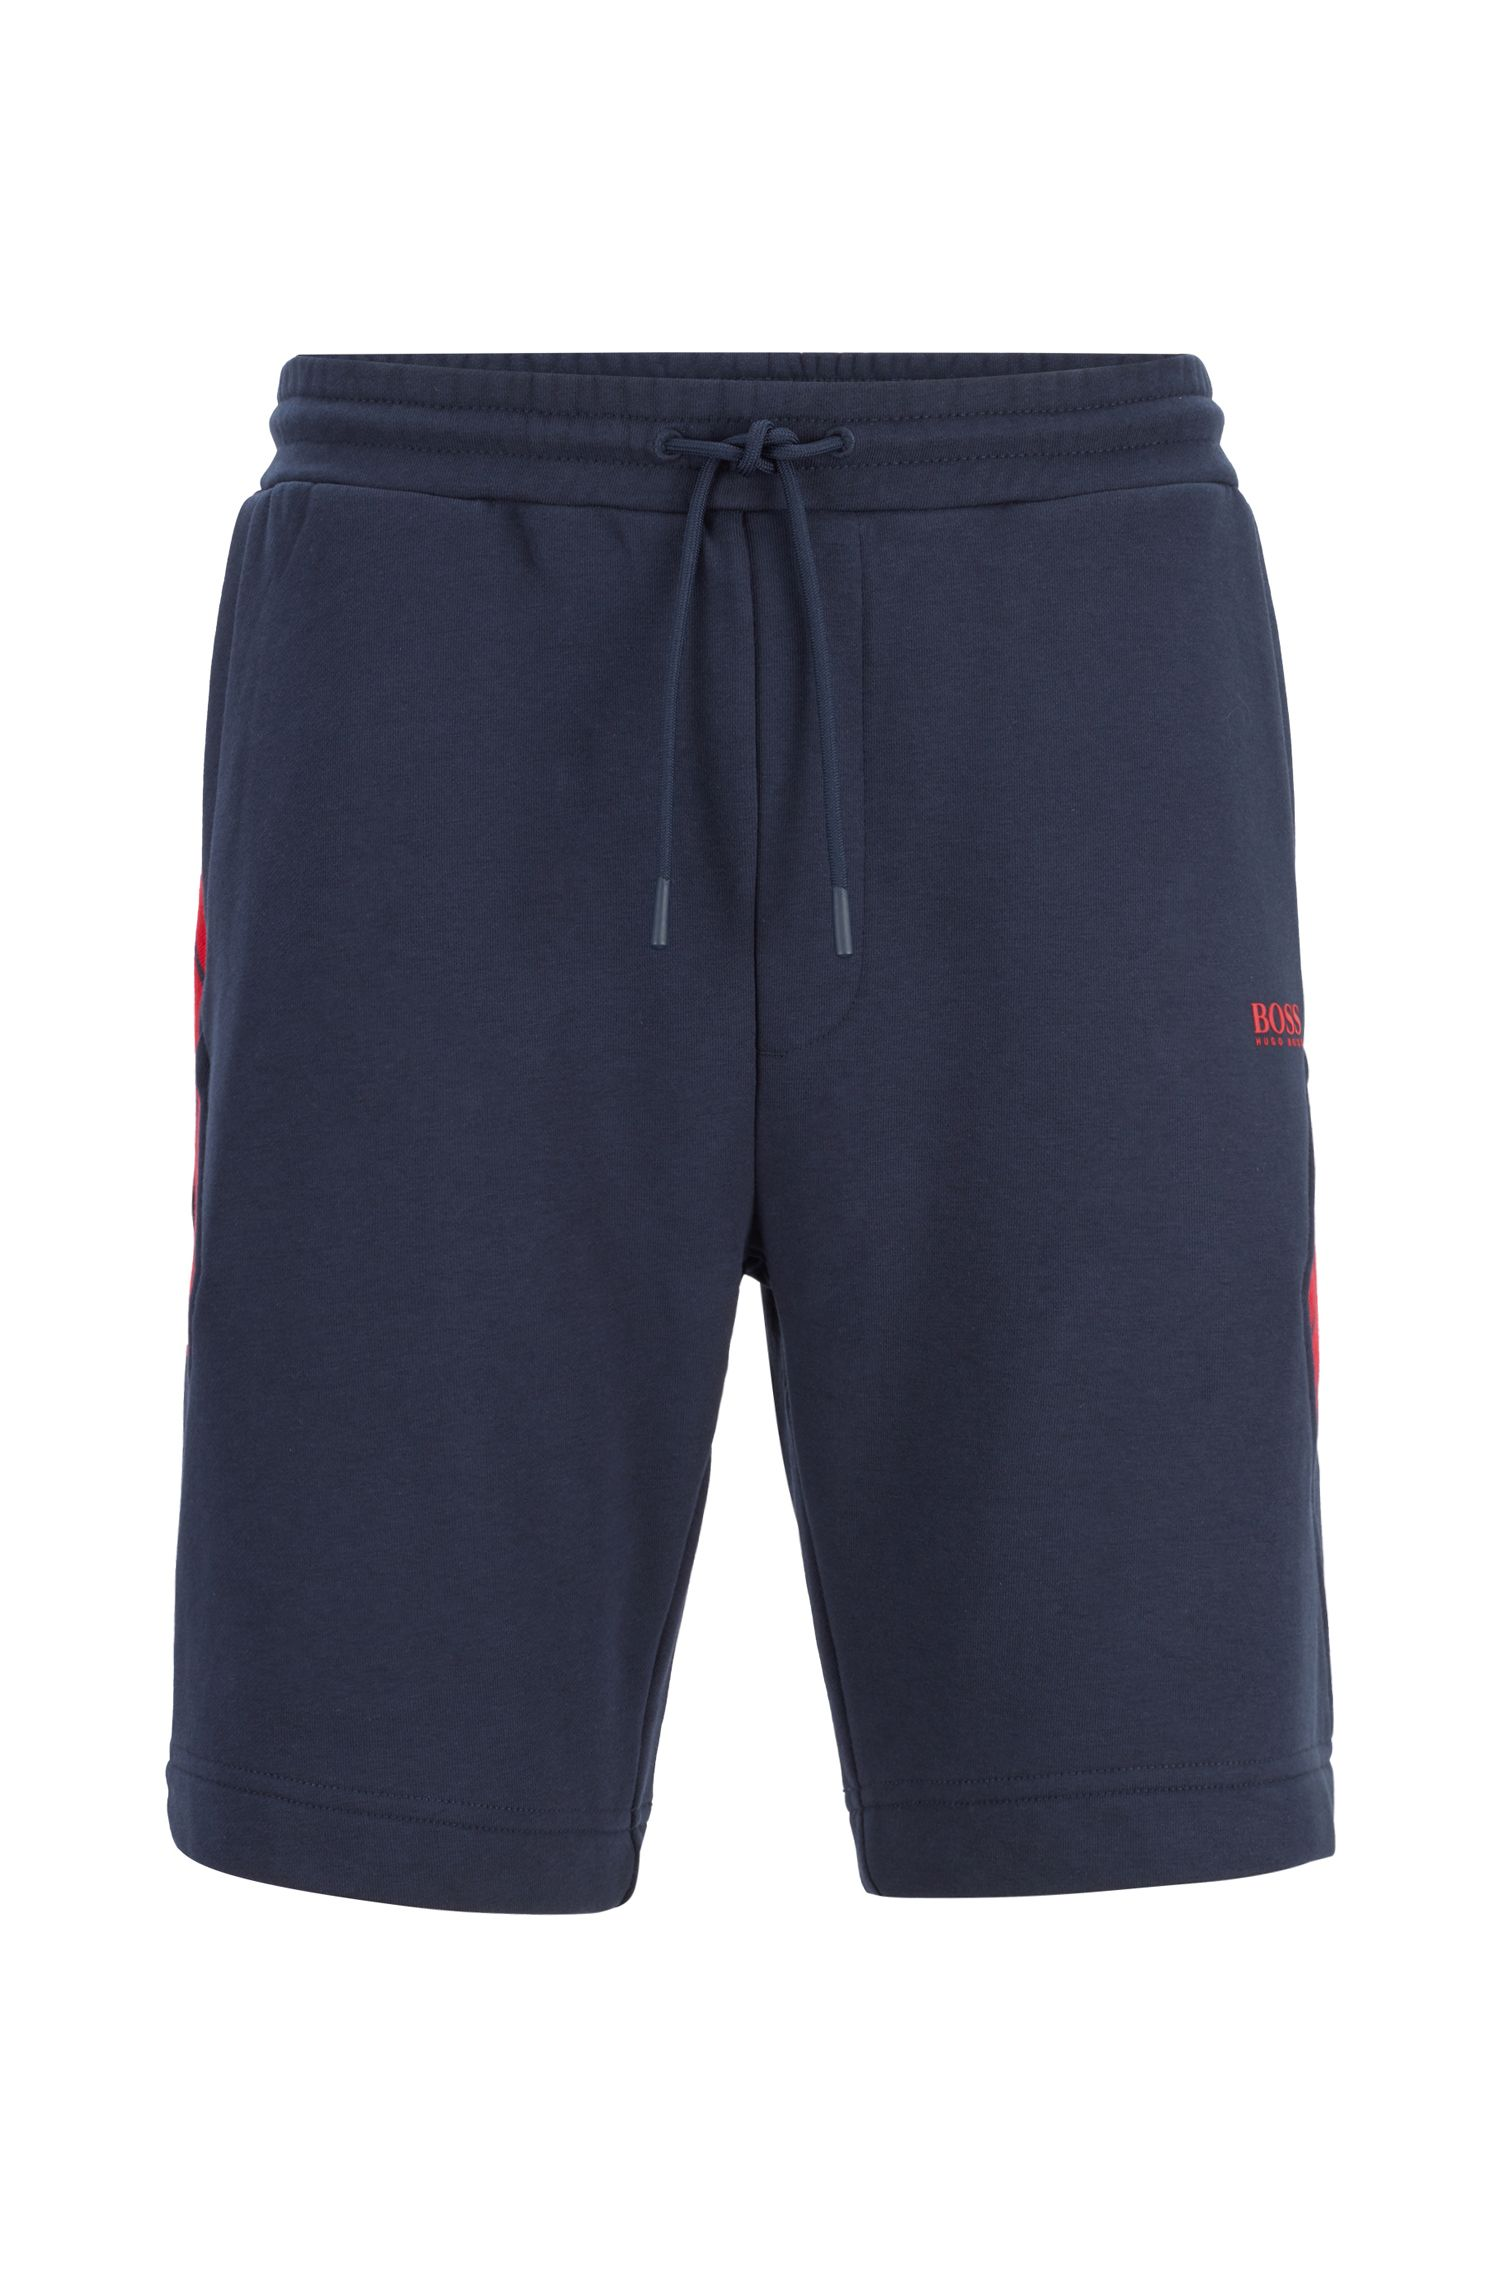 Drawstring shorts in French terry with striped inserts, Dark Blue